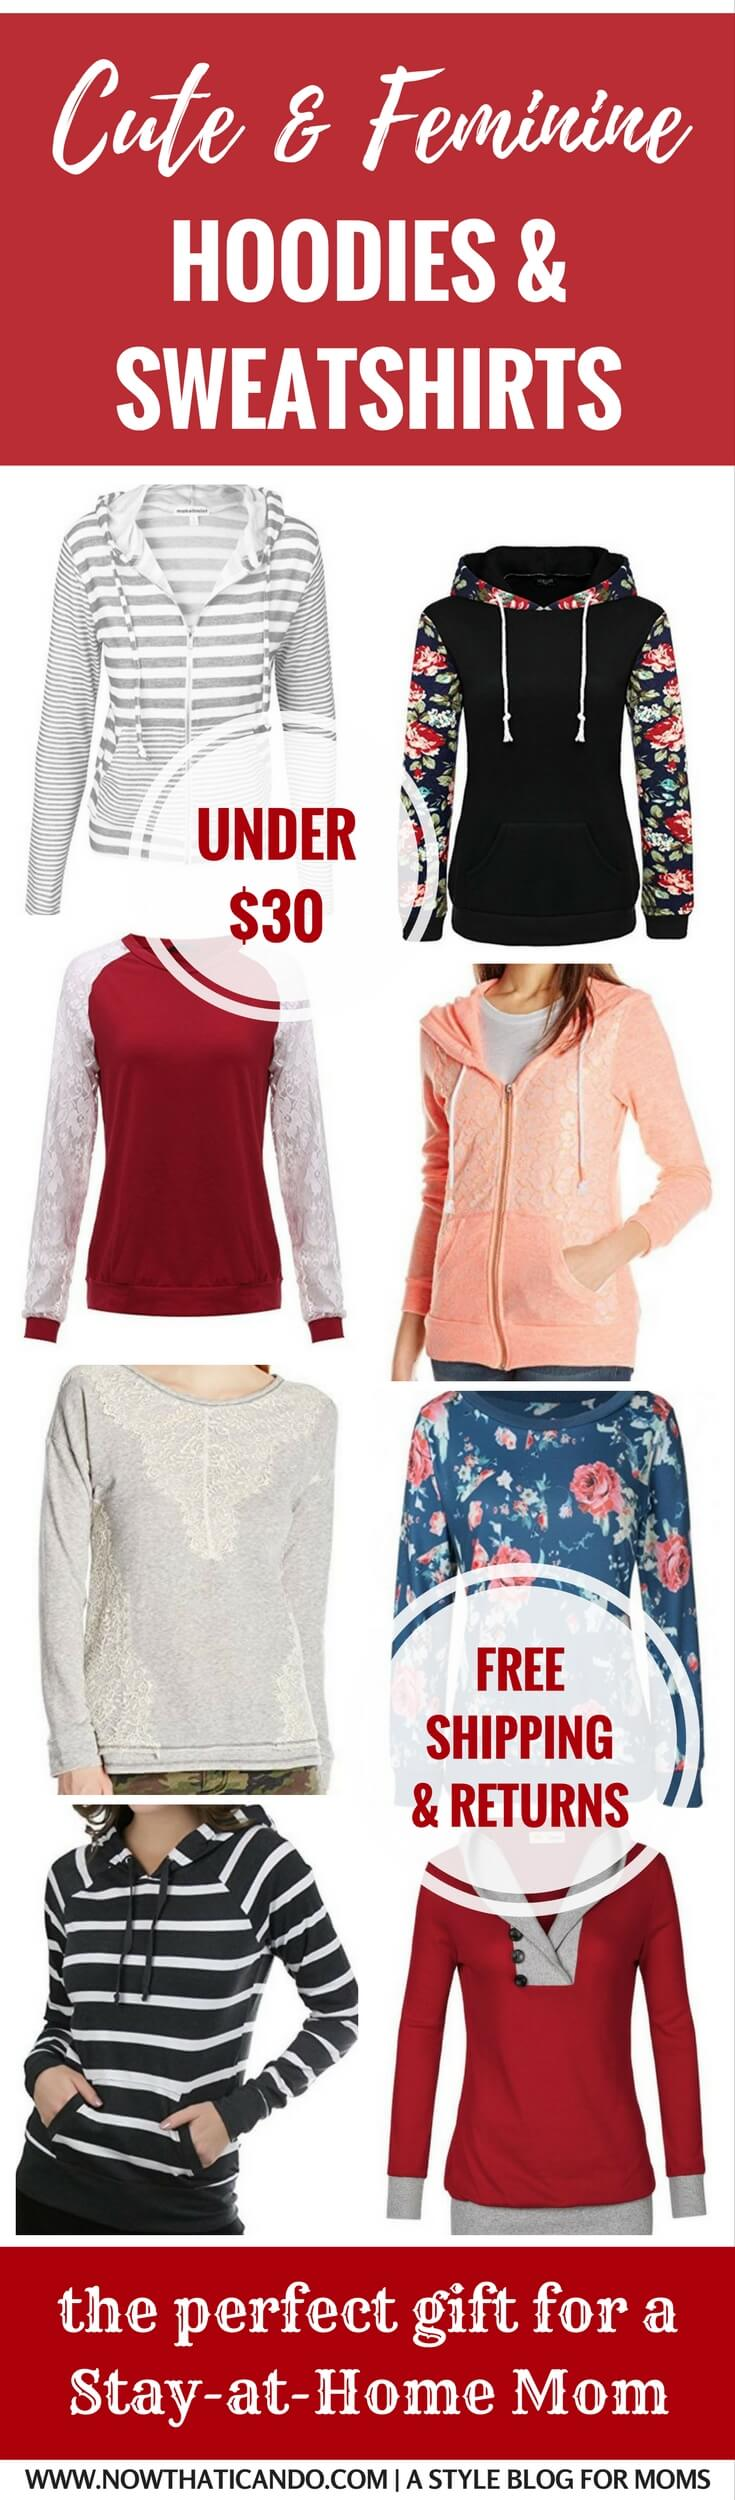 Perfect $30 gift for a busy mom! She can look cute while staying comfy in these feminine pullovers and hoodies on Amazon! So affordable too, under $30 with free shipping and returns! I want them all!